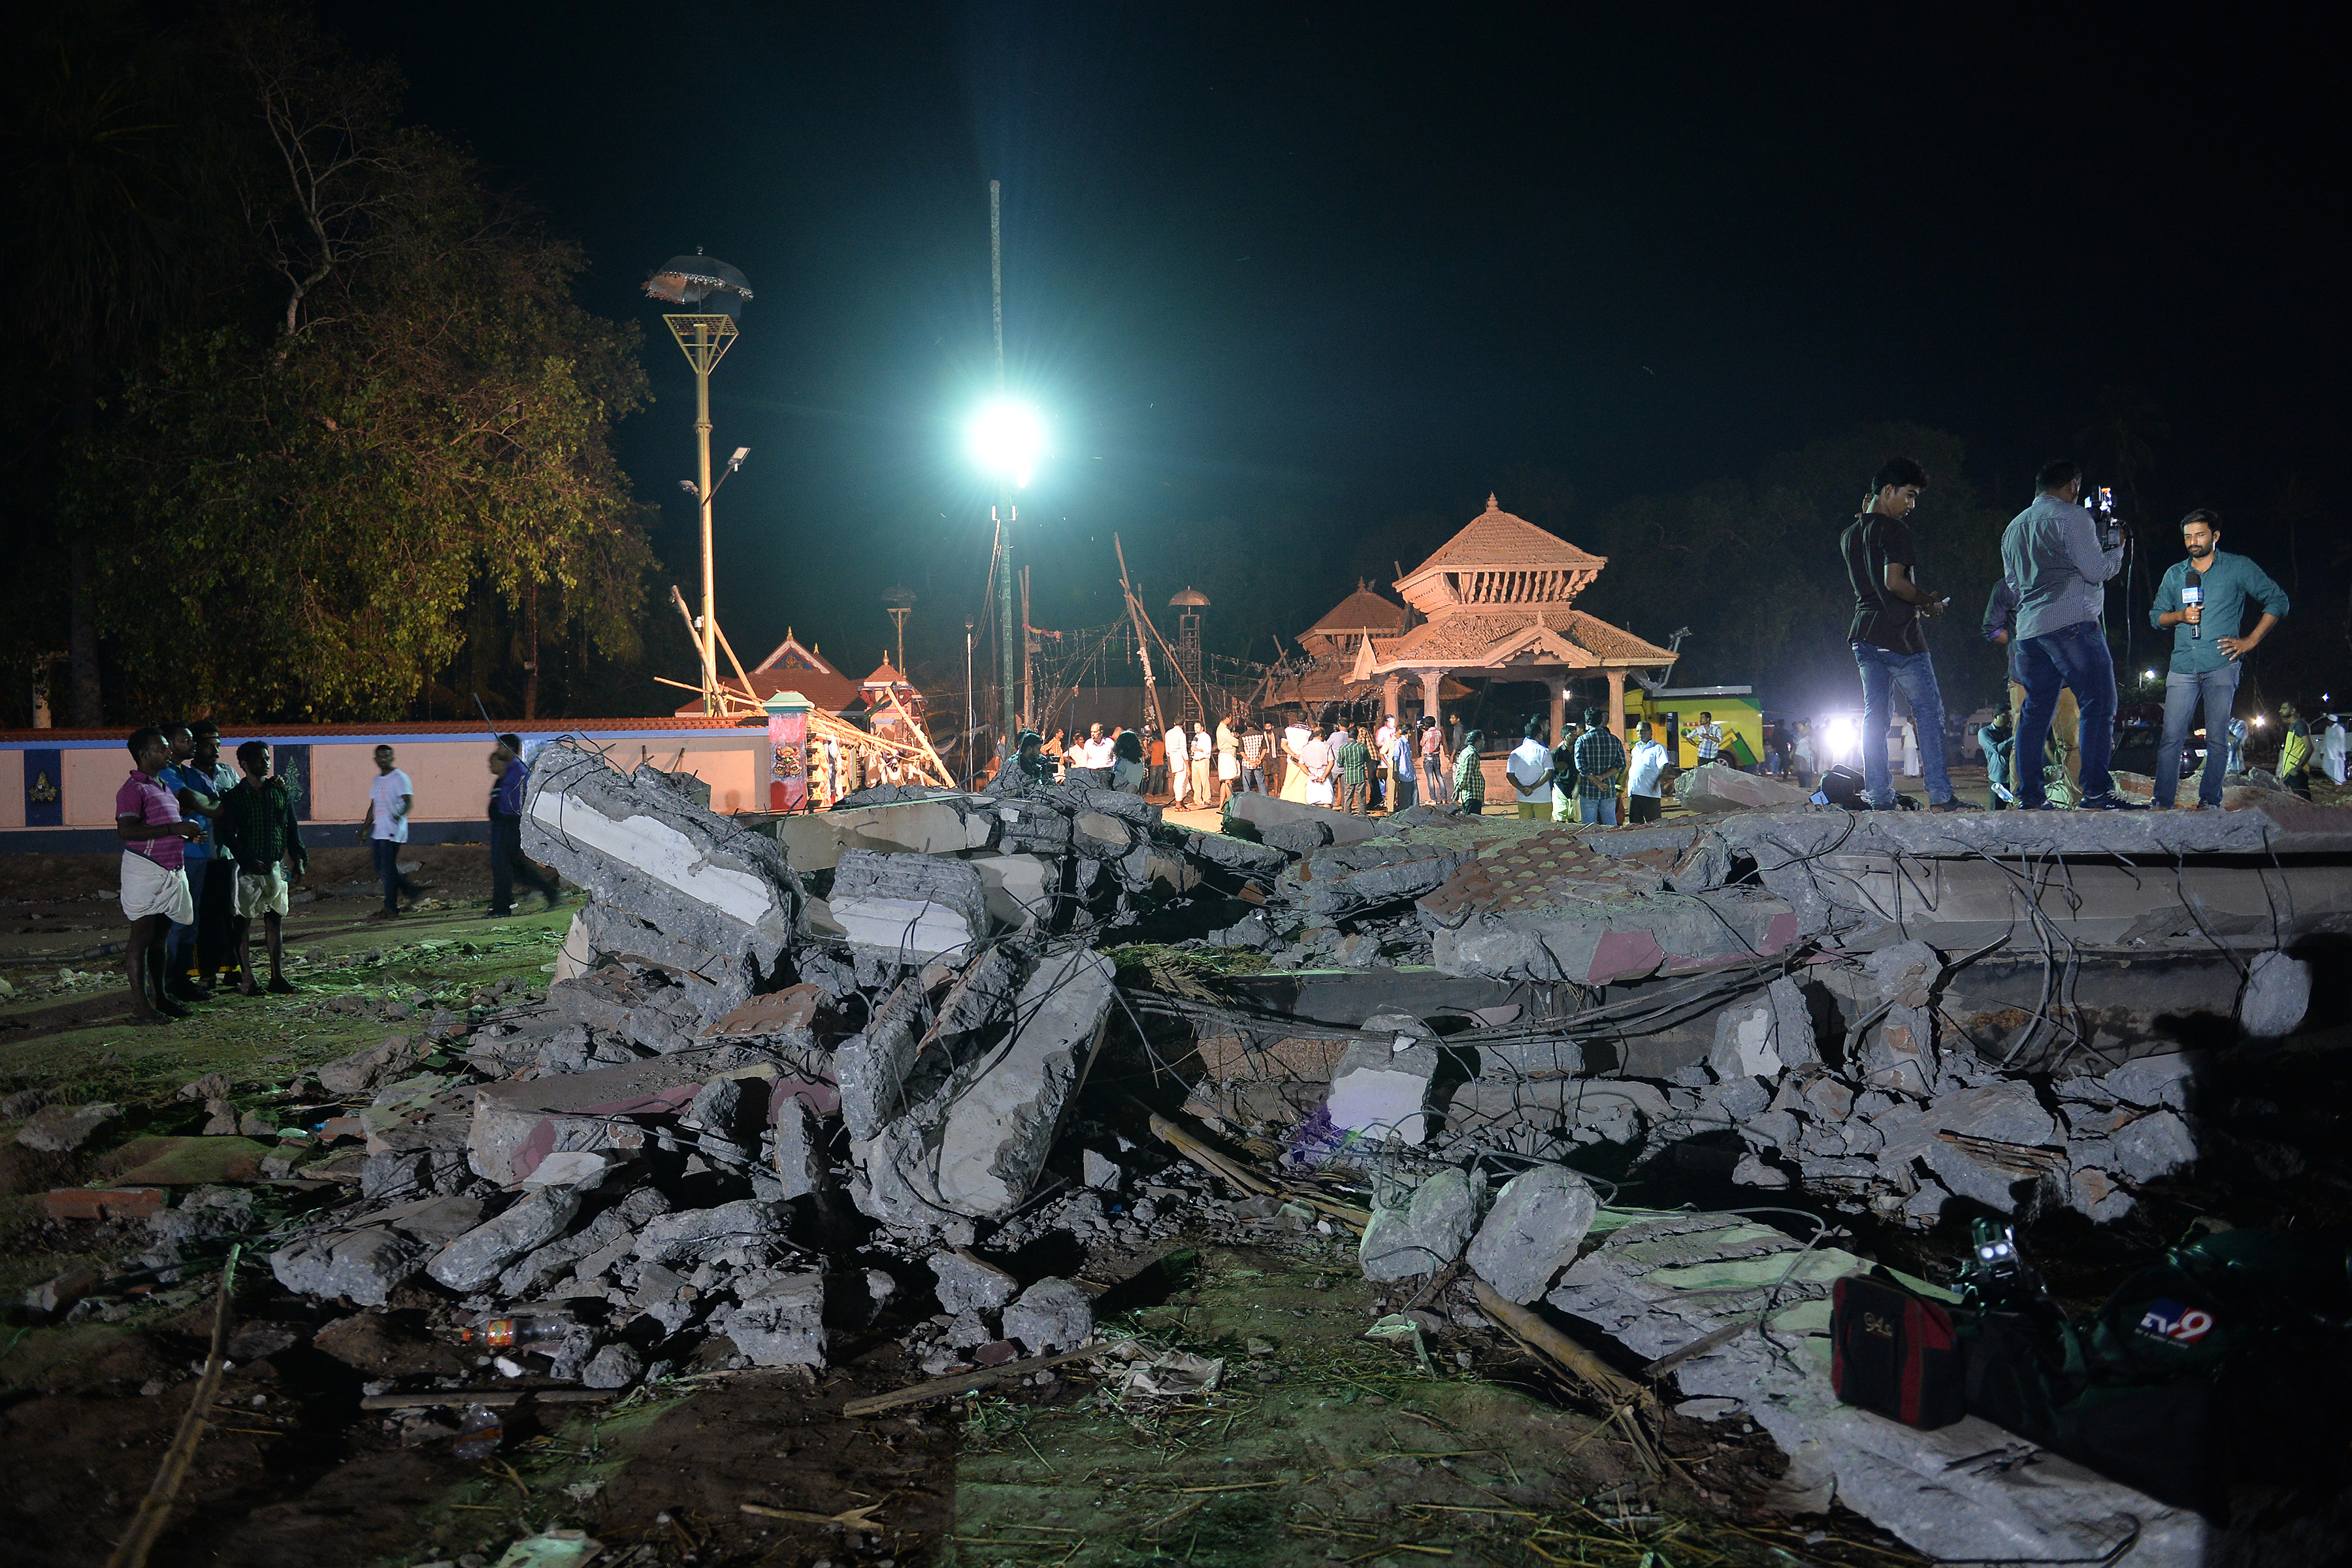 Onlookers stand amid the debris in the aftermath of the deadly fire explosion that rocked Puttingal Temple in Paravoor, nearly 40 miles (60 km) northwest of Thiruvananthapuram in Kerala state, India, on April 10, 2016